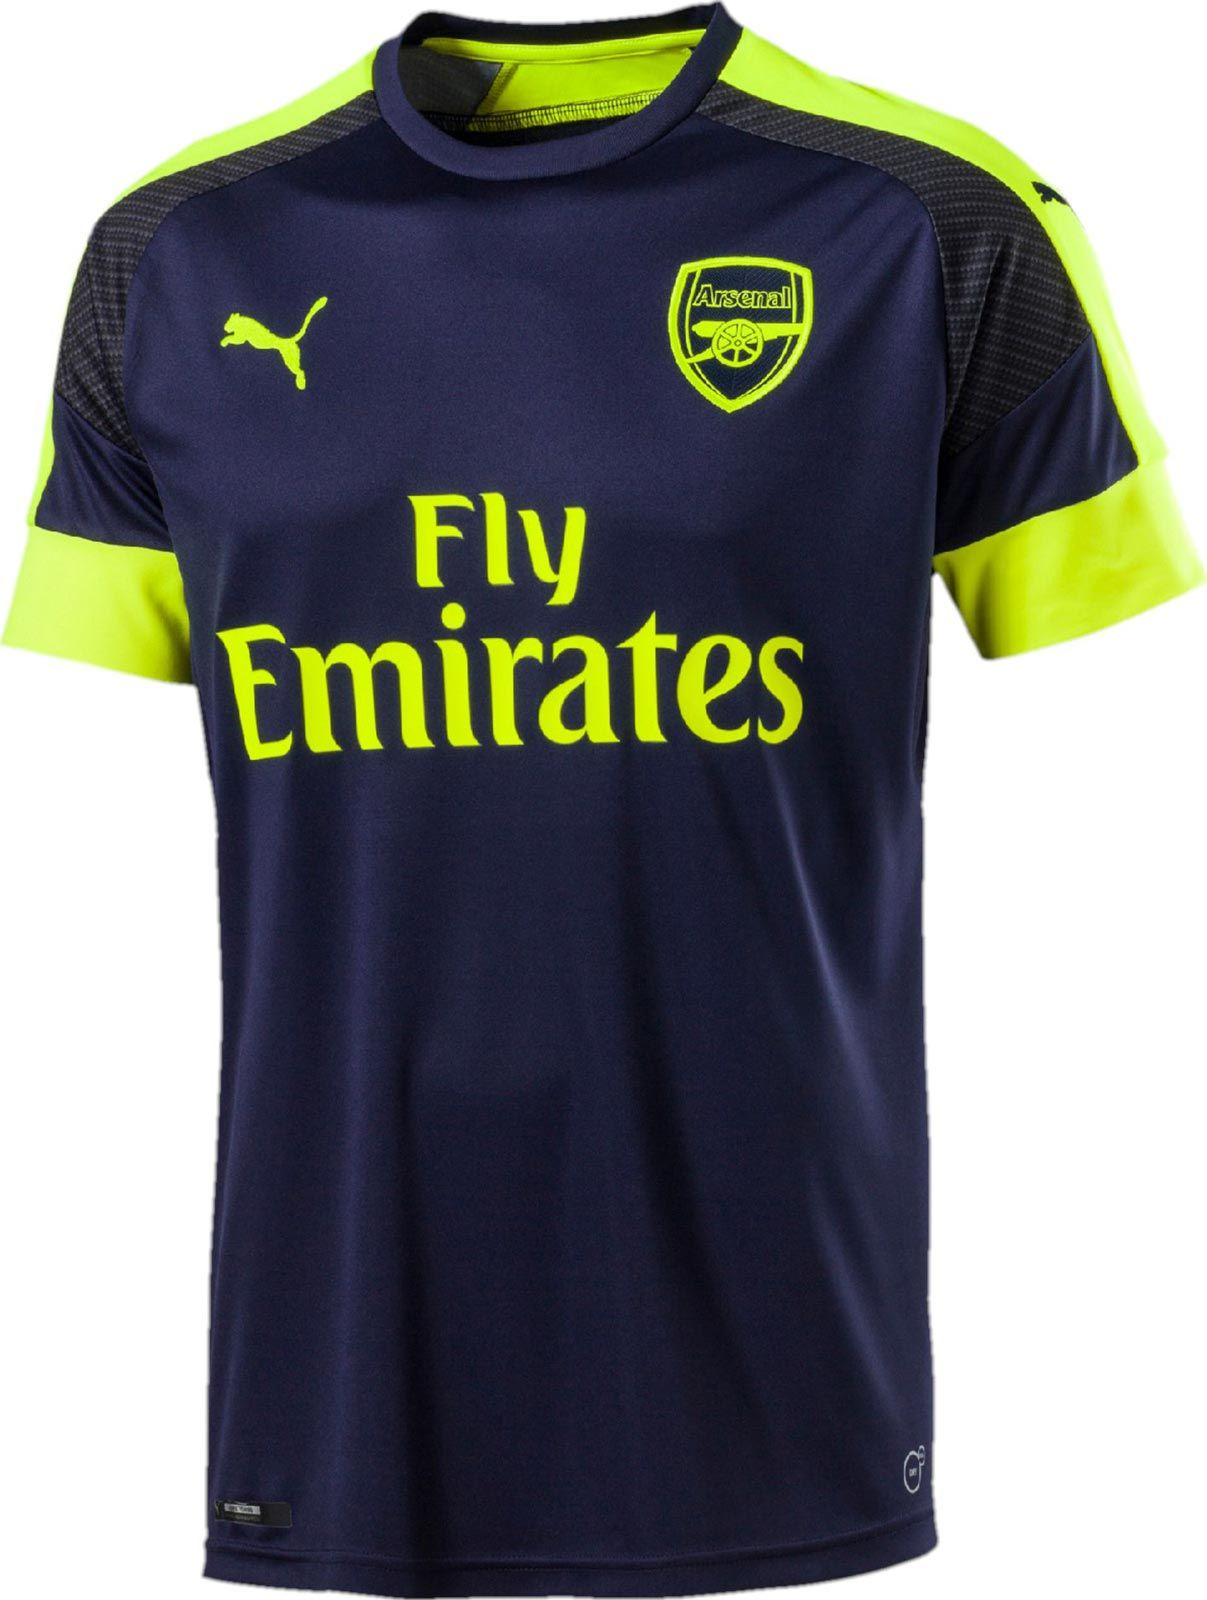 0087b3a3fe4 The Arsenal 16-17 third kit is dark navy with fluorescent yellow ...